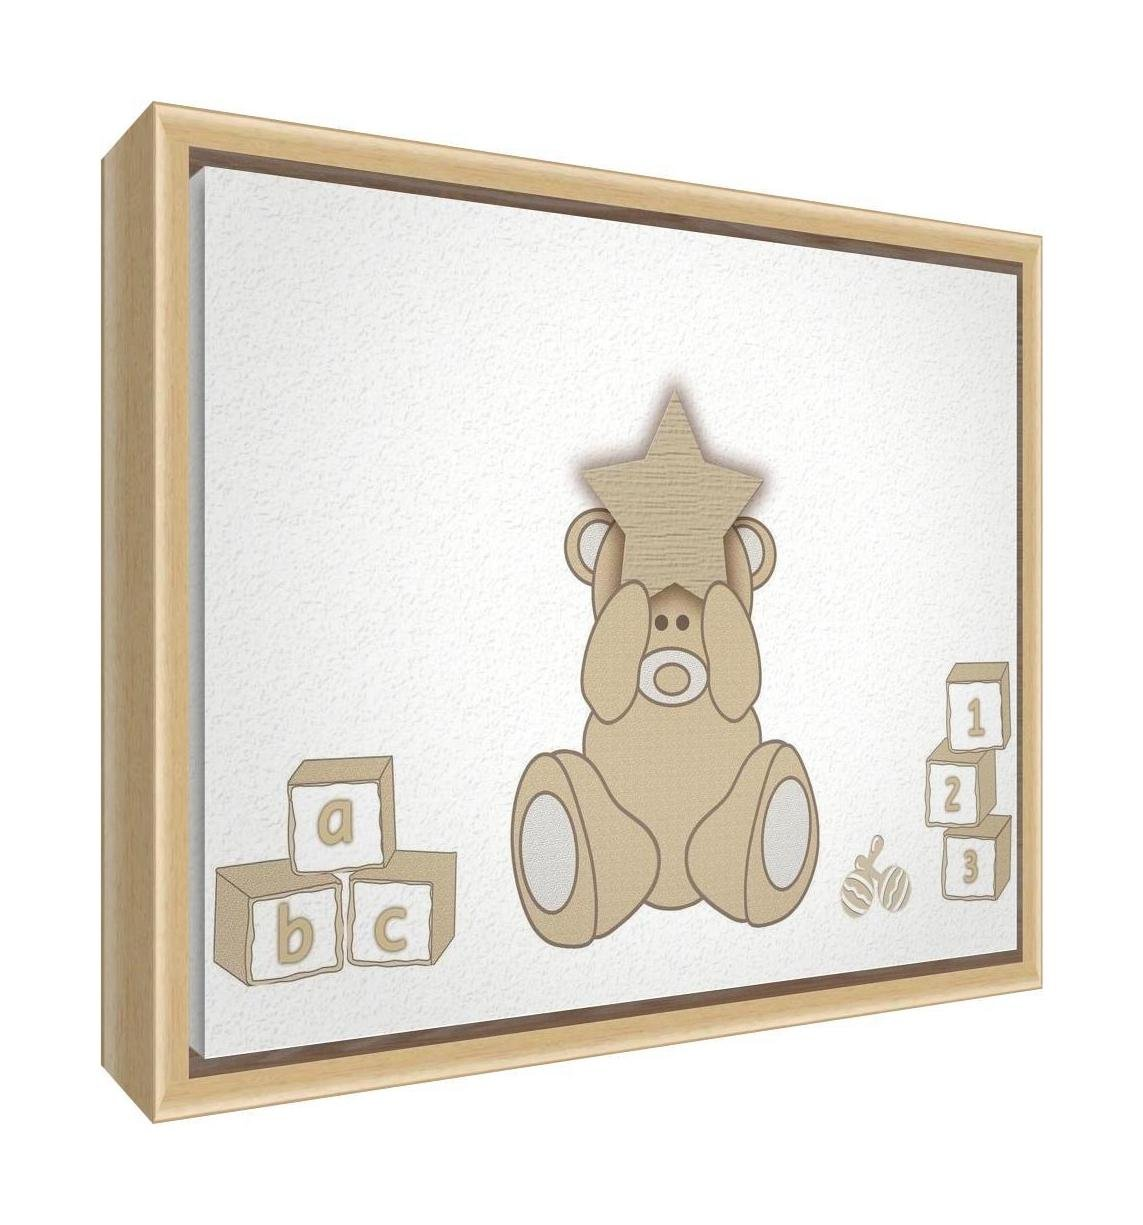 Feel Good Art Eco-Printed and Framed Nursery Canvas with solid Natural Wooden Frame (34 x 24 x 3 cm, Small, Cream, Bear Heart) BEARHEART-128FCNAT-20